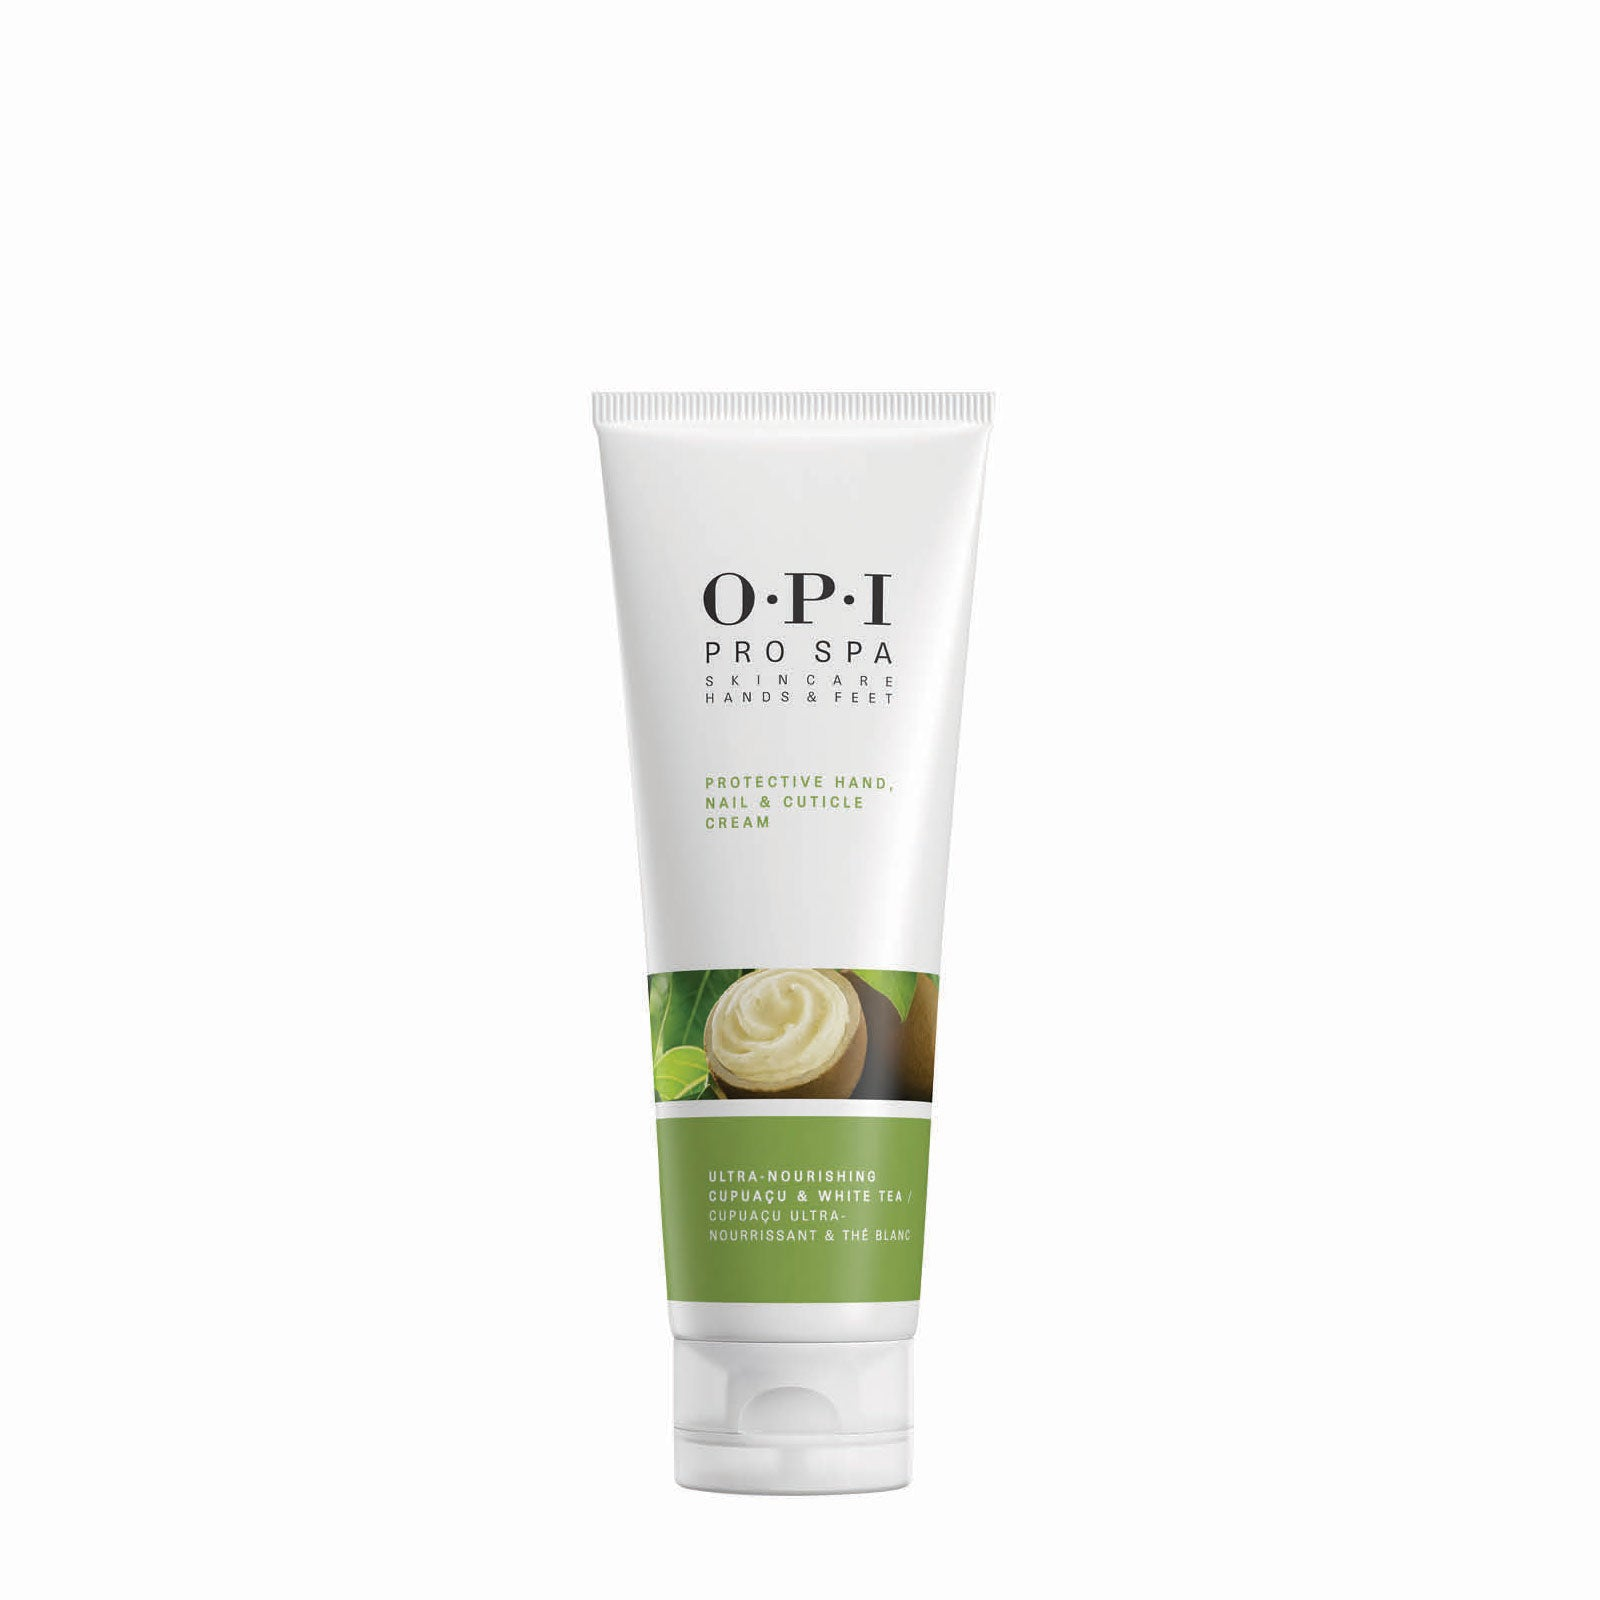 OPI ProSpa Protective Hand, Nail & Cuticle Cream 50ml